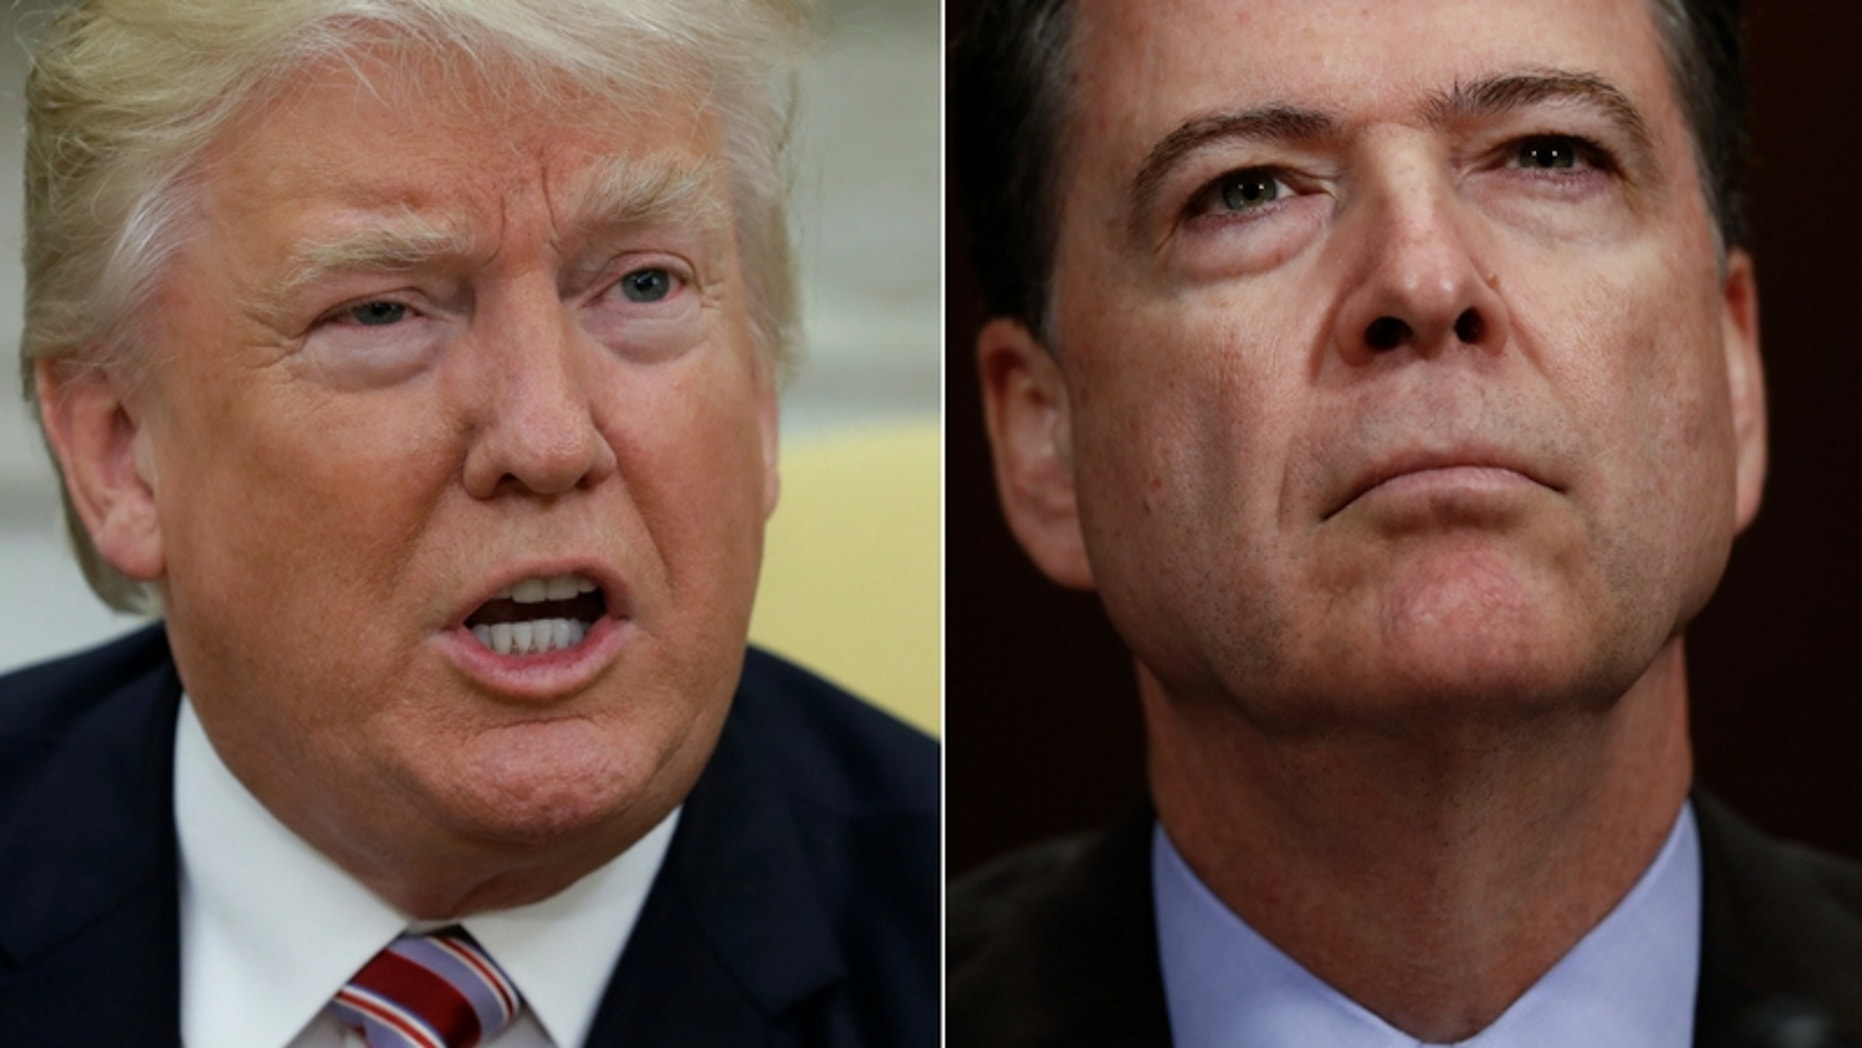 President Donald Trump had asked FBI Director James Comey for his loyalty during a dinner in January, a report claimed. (Associated Press)